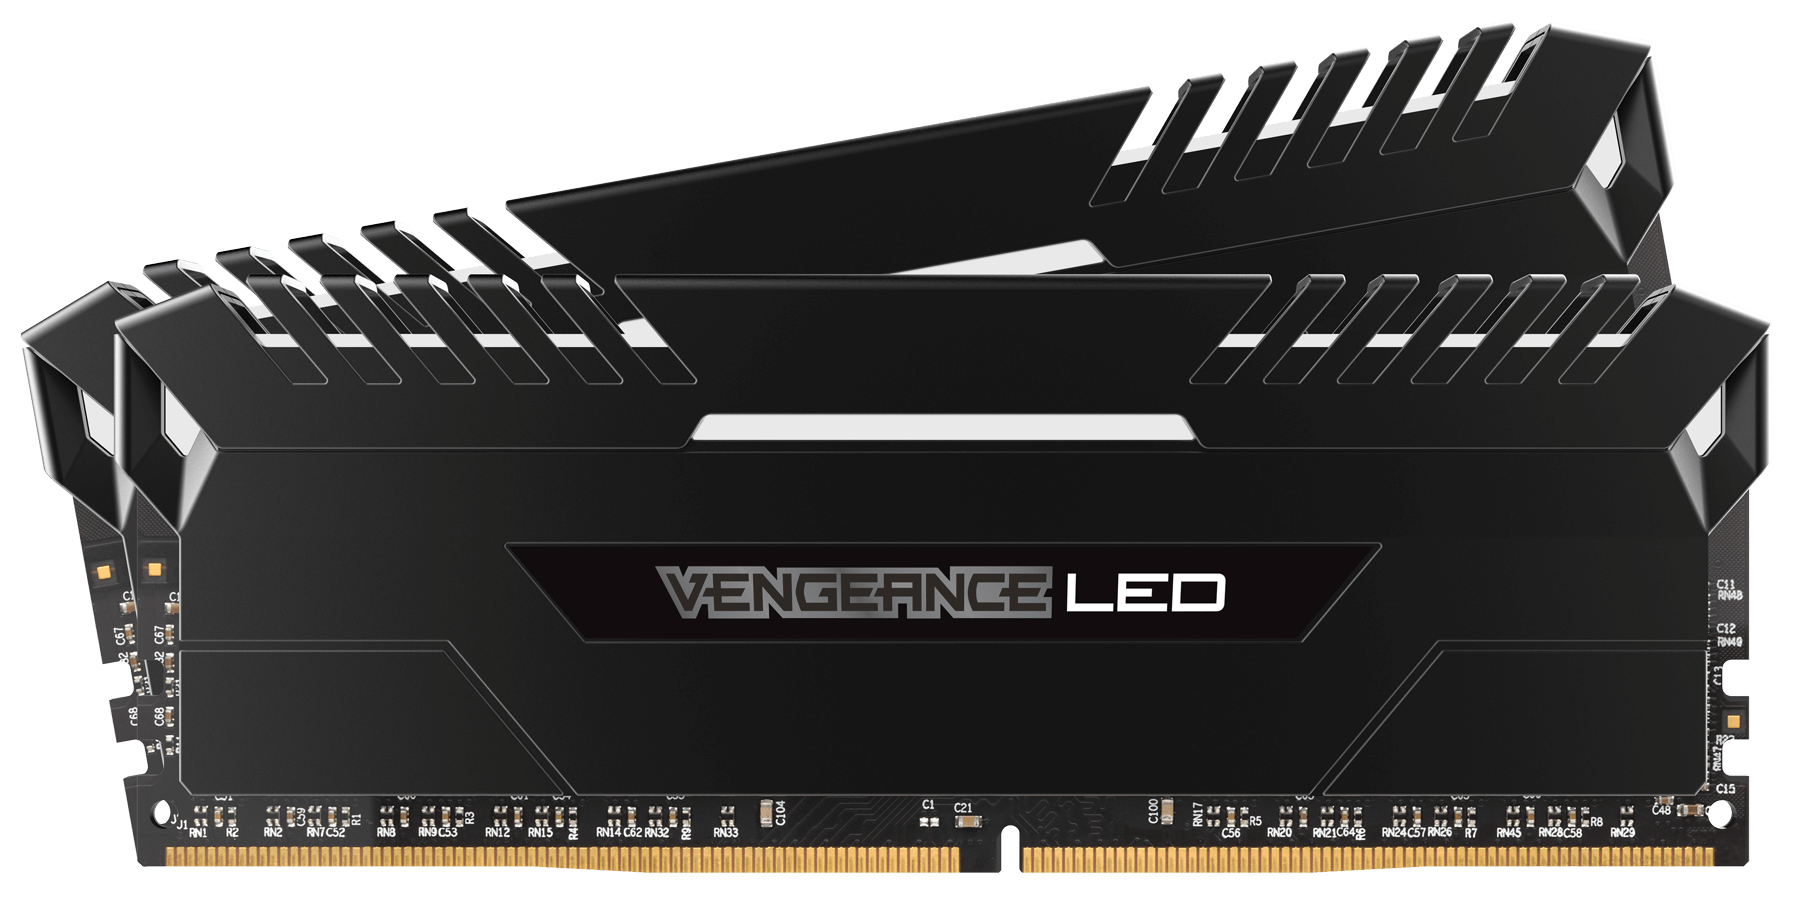 Corsair Vengeance LED 2x8GB DDR4-2666 memory module 16 GB 2666 MHz